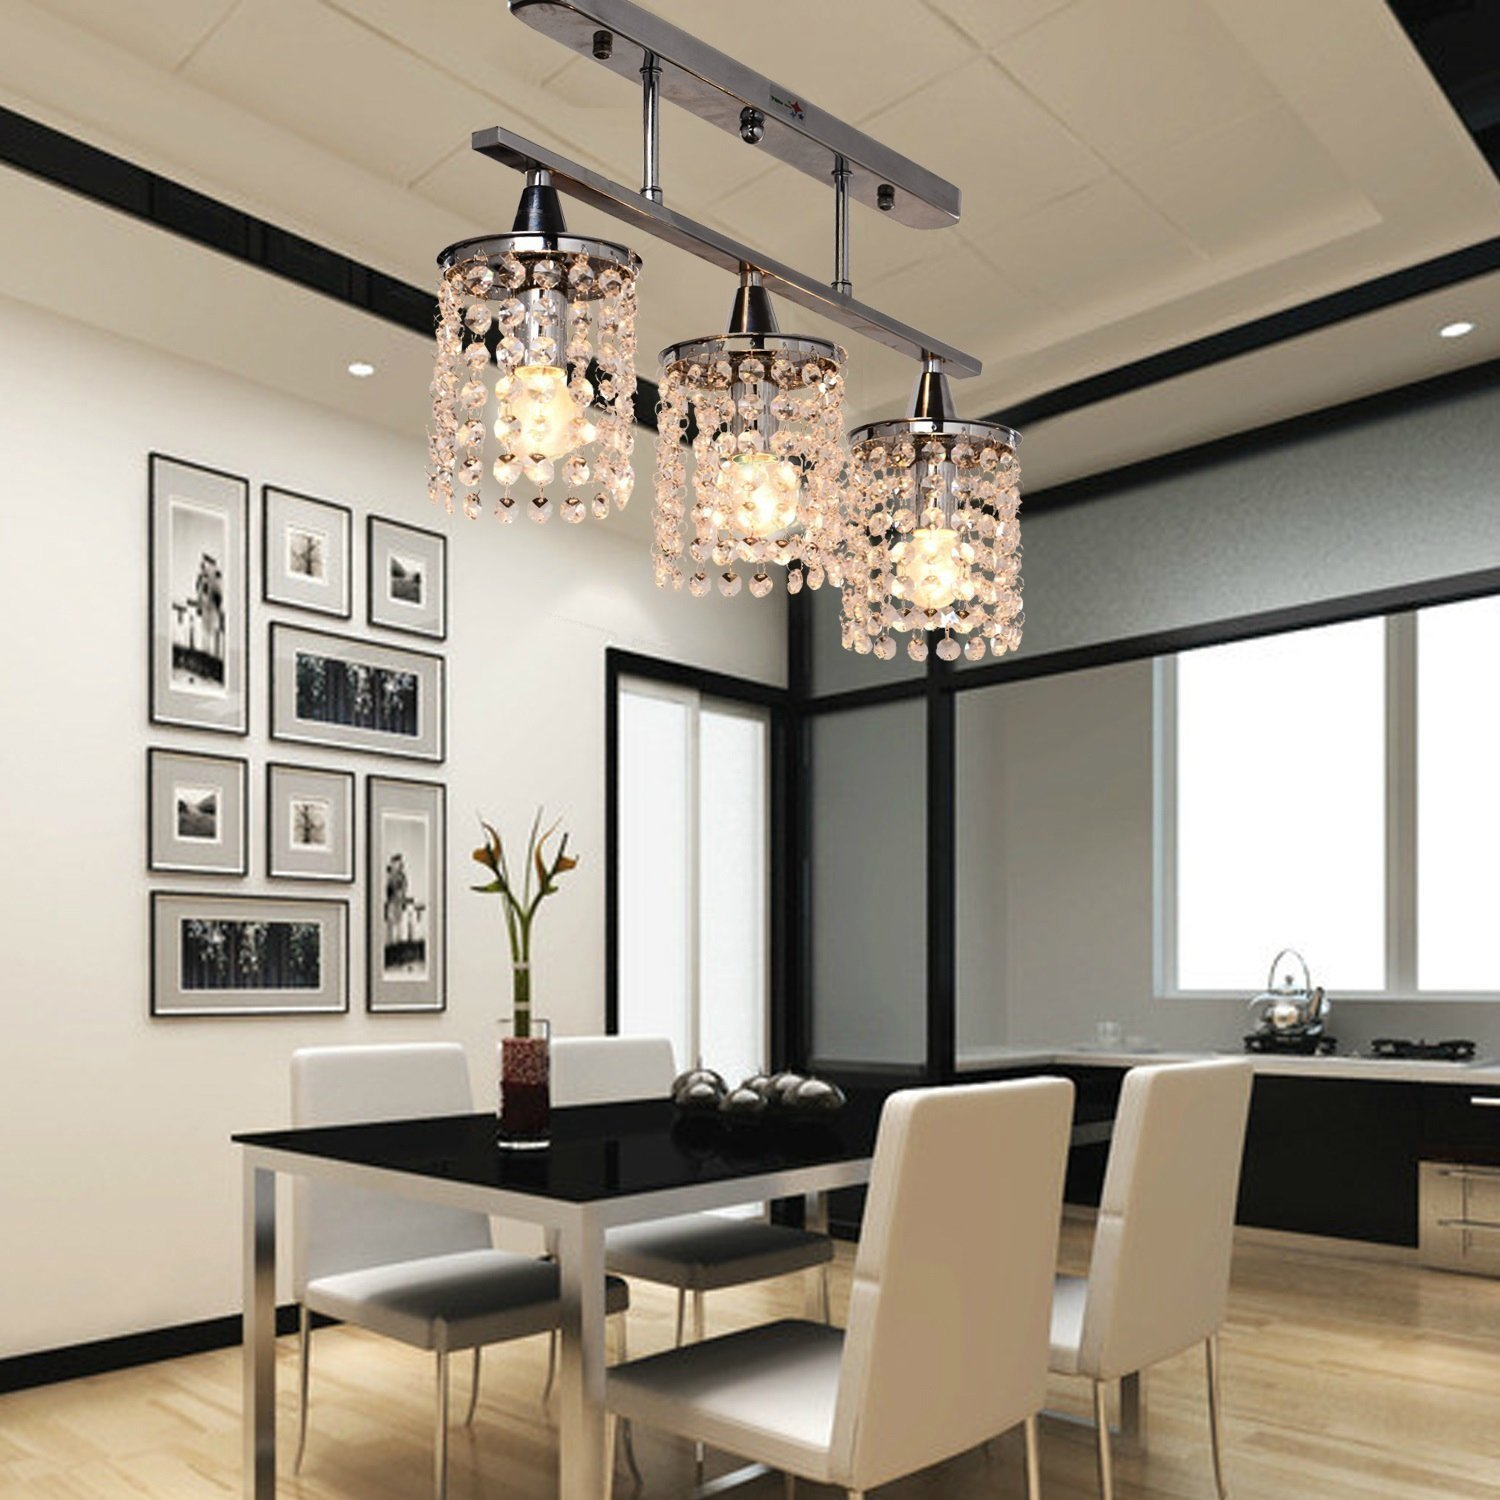 Dining room flush led lighting for modern dining room lights with - 3 Lights Hanging Led K9 Crystal Linear Chandelier With Stainless Steel Fixture Modern Ceiling Lamp Luminarias